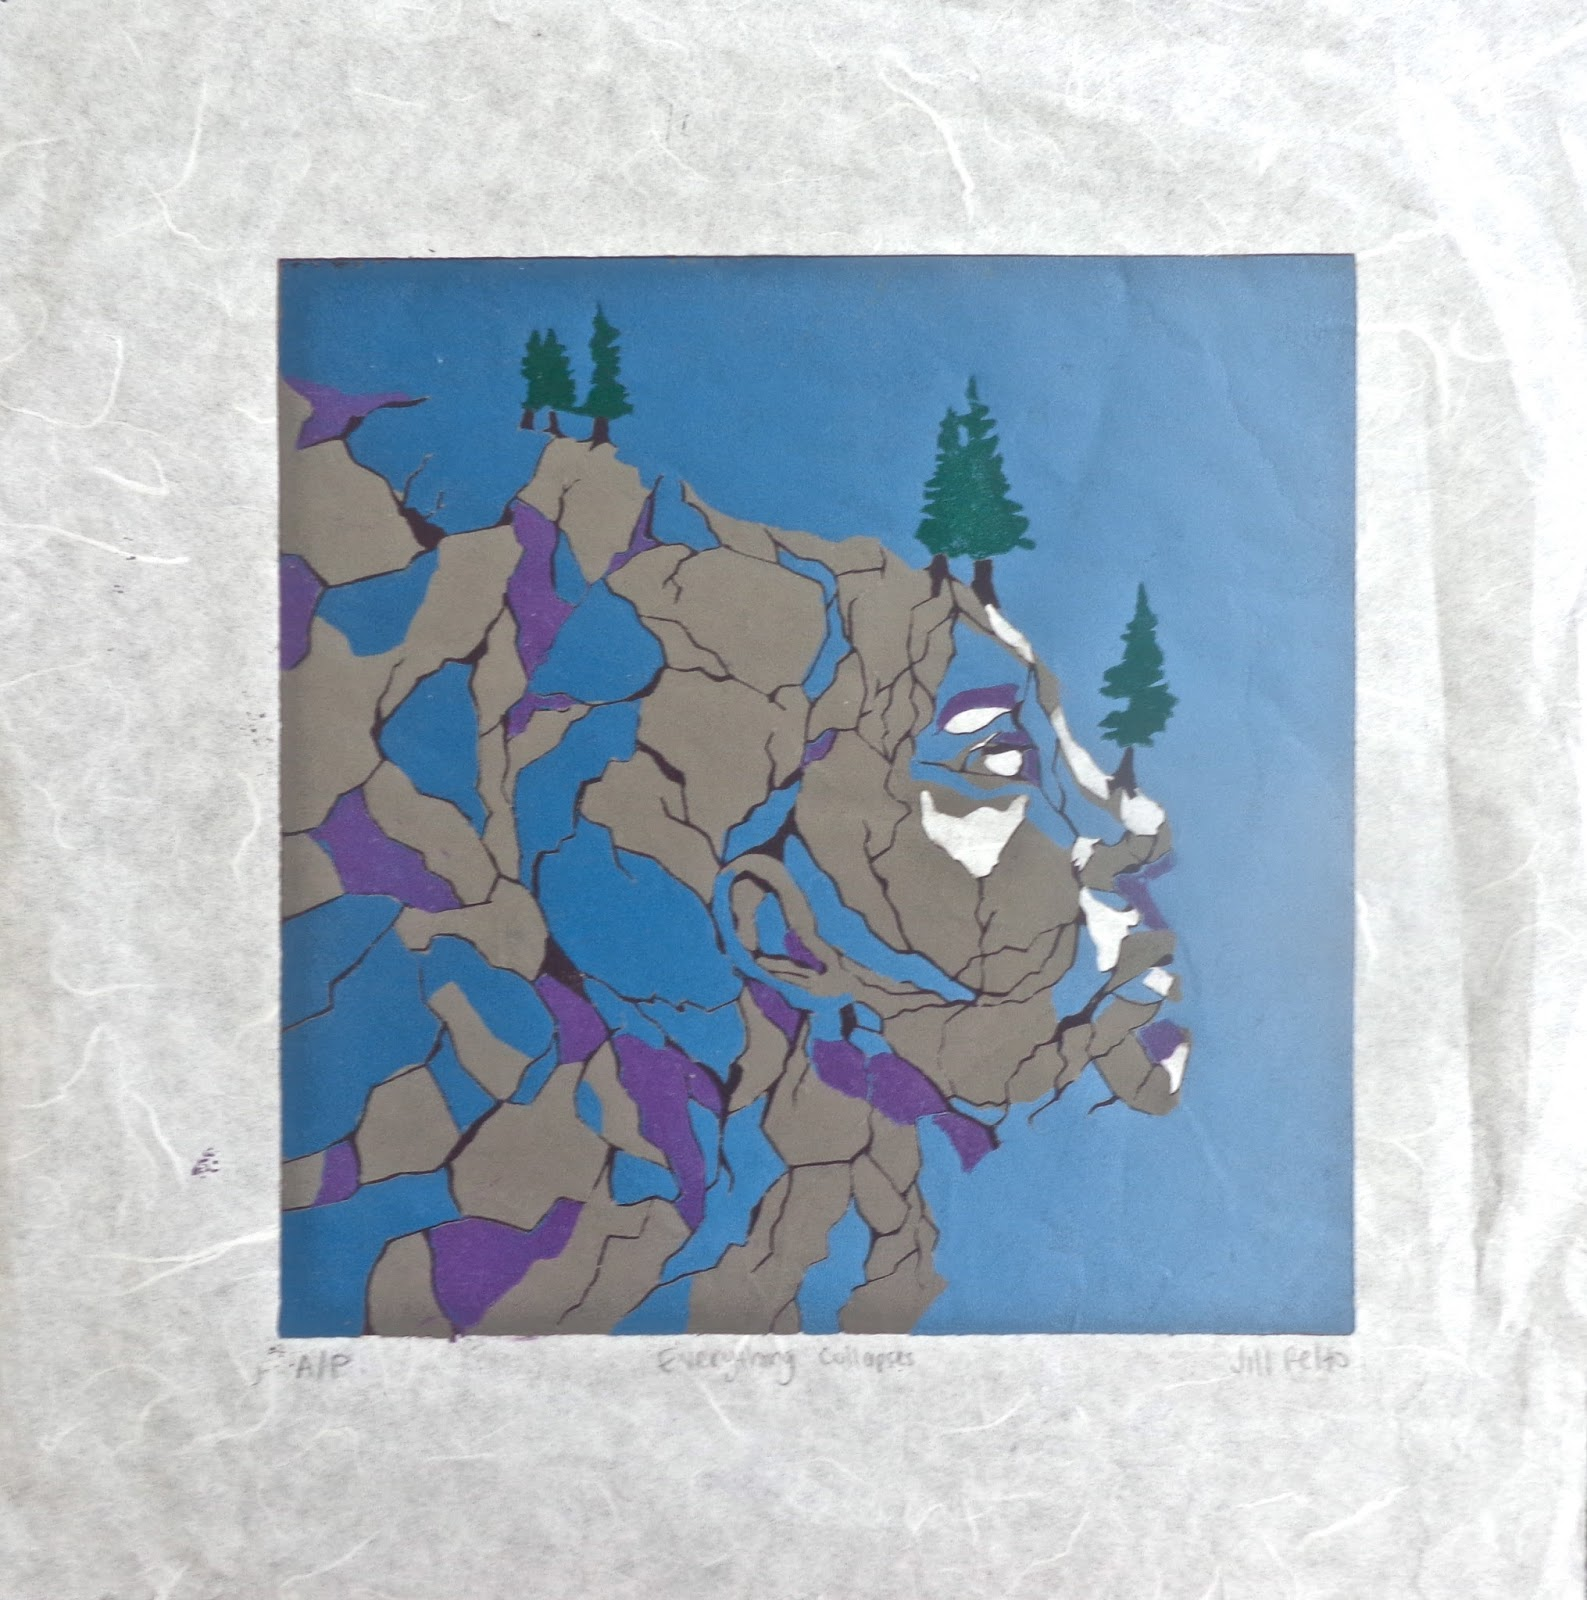 The Second Linoleum Relief Print We Made Was Done Multi Colored In What Is Called Suicide Style Because You Cannot Fix A Mistake Un Carve Something